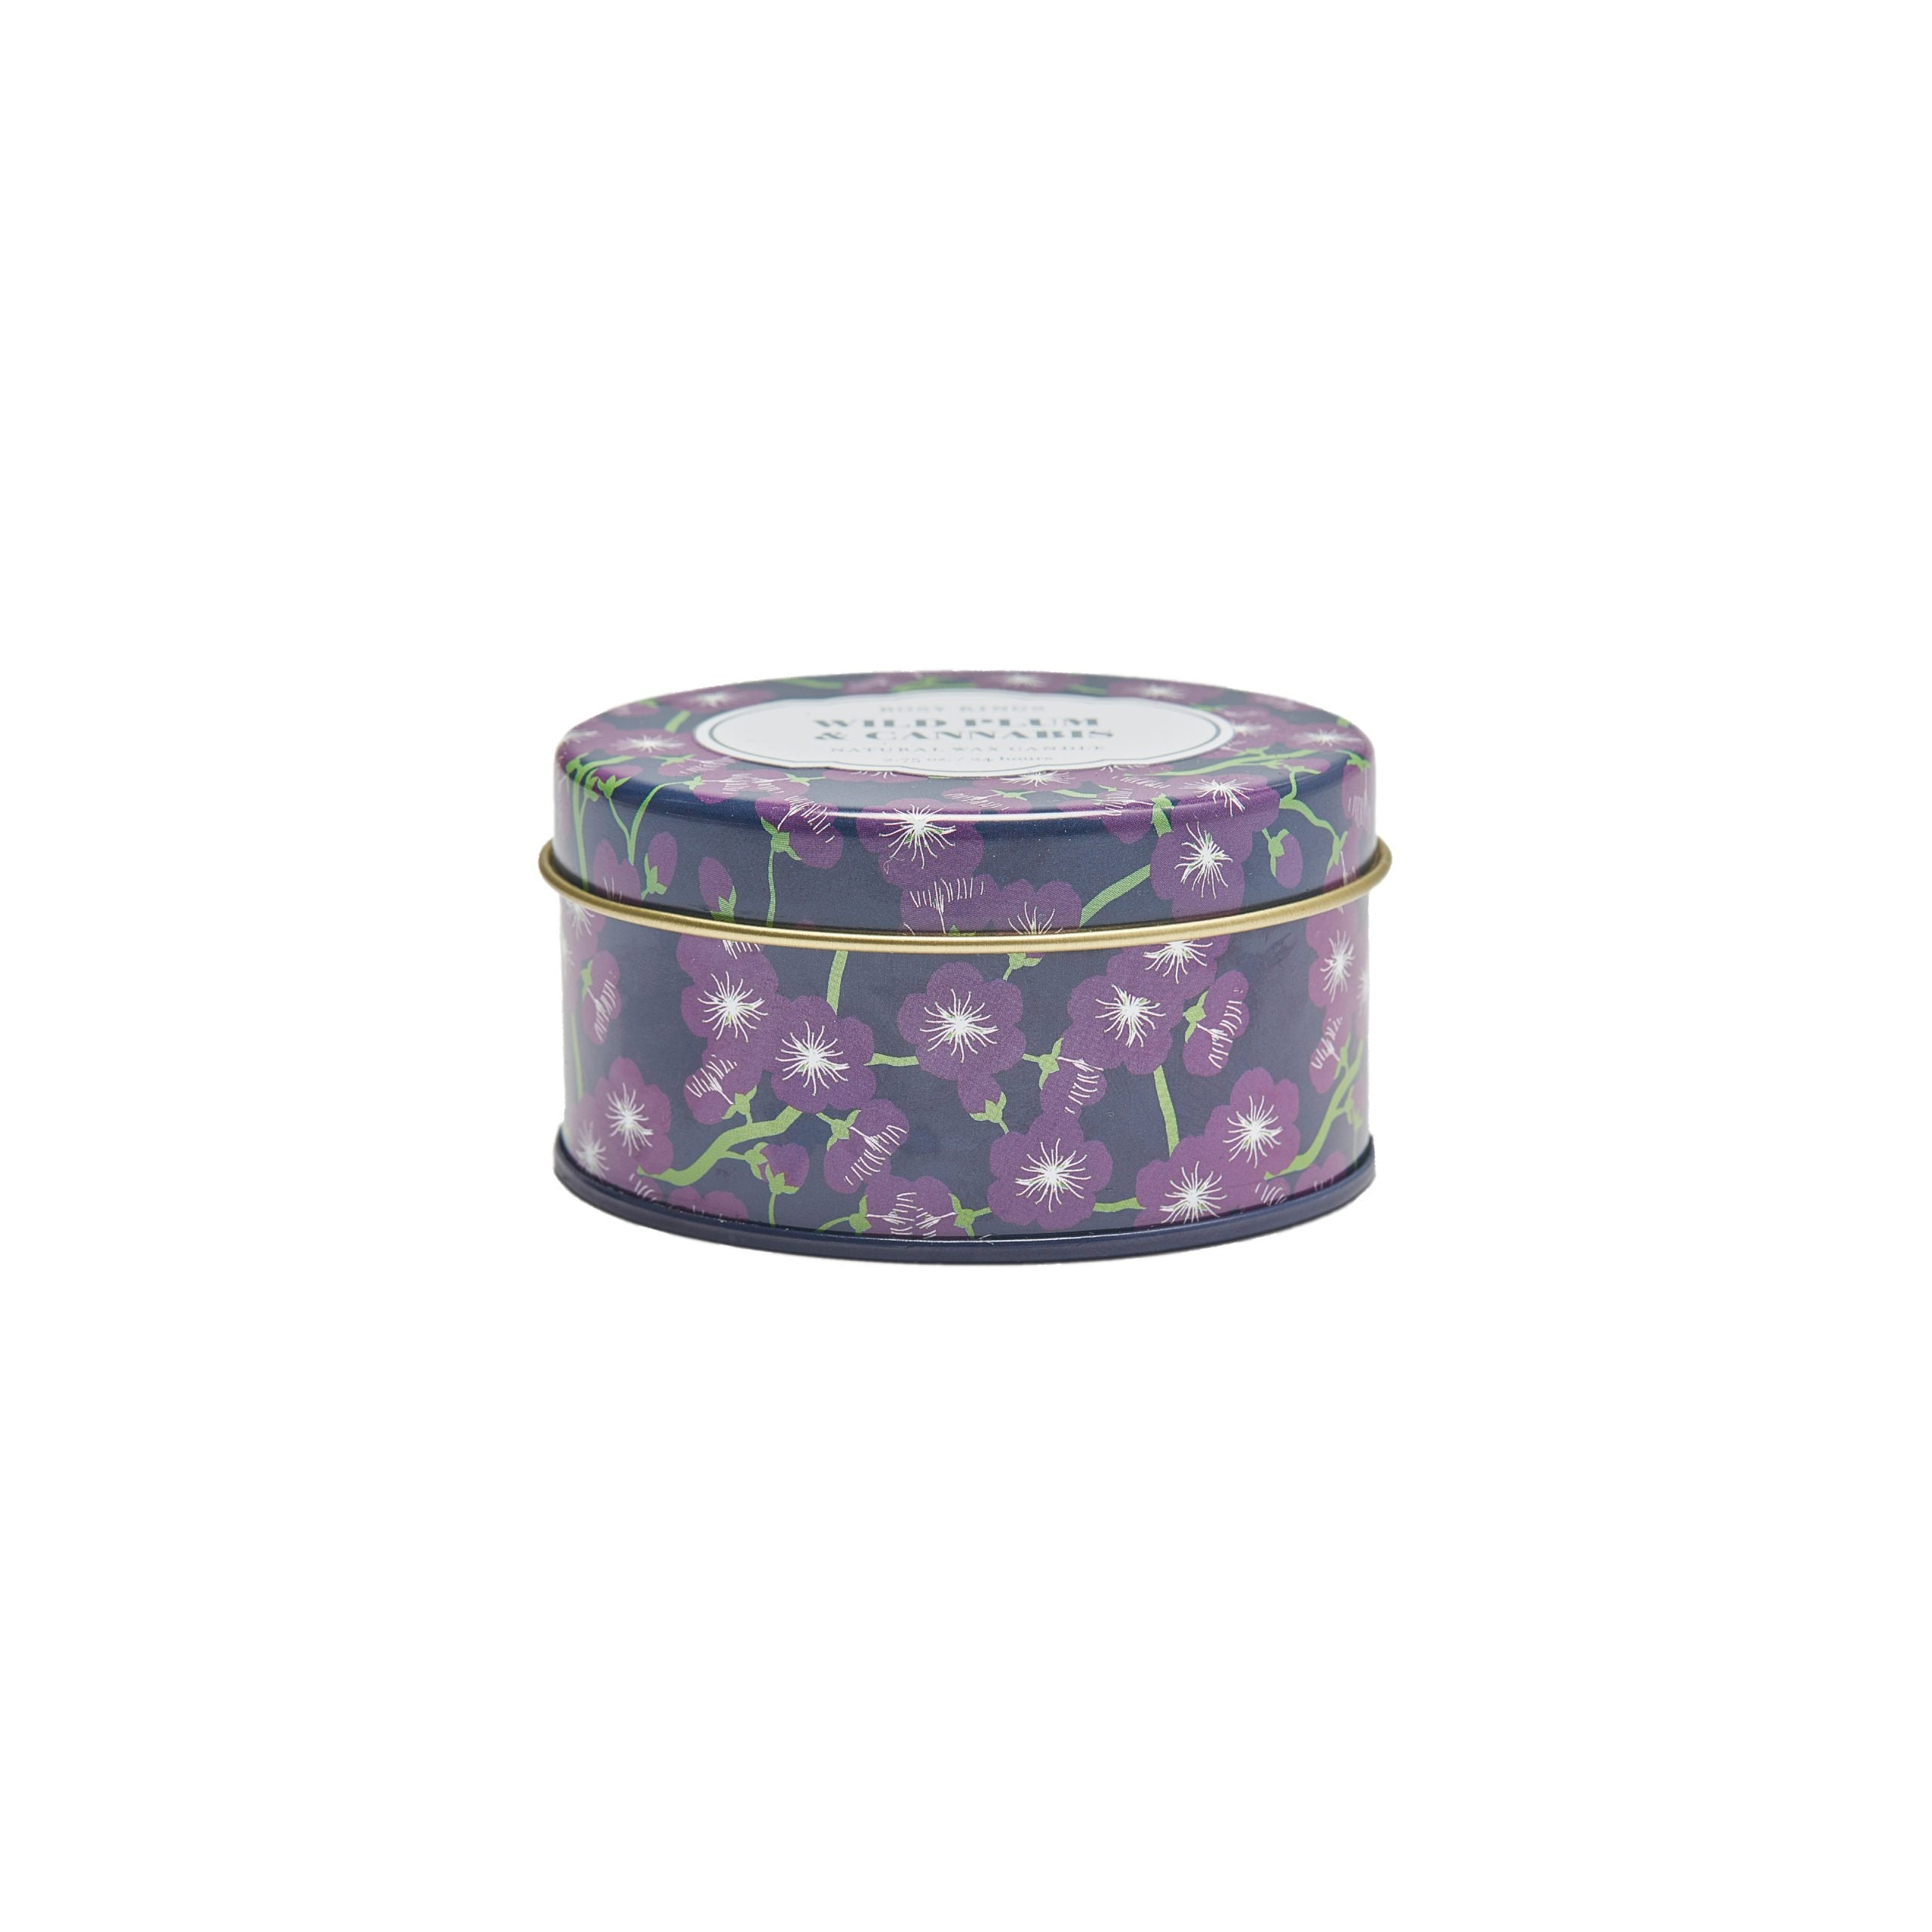 Rosy Rings Wild Plum & Cannabis Travel Tin Candle